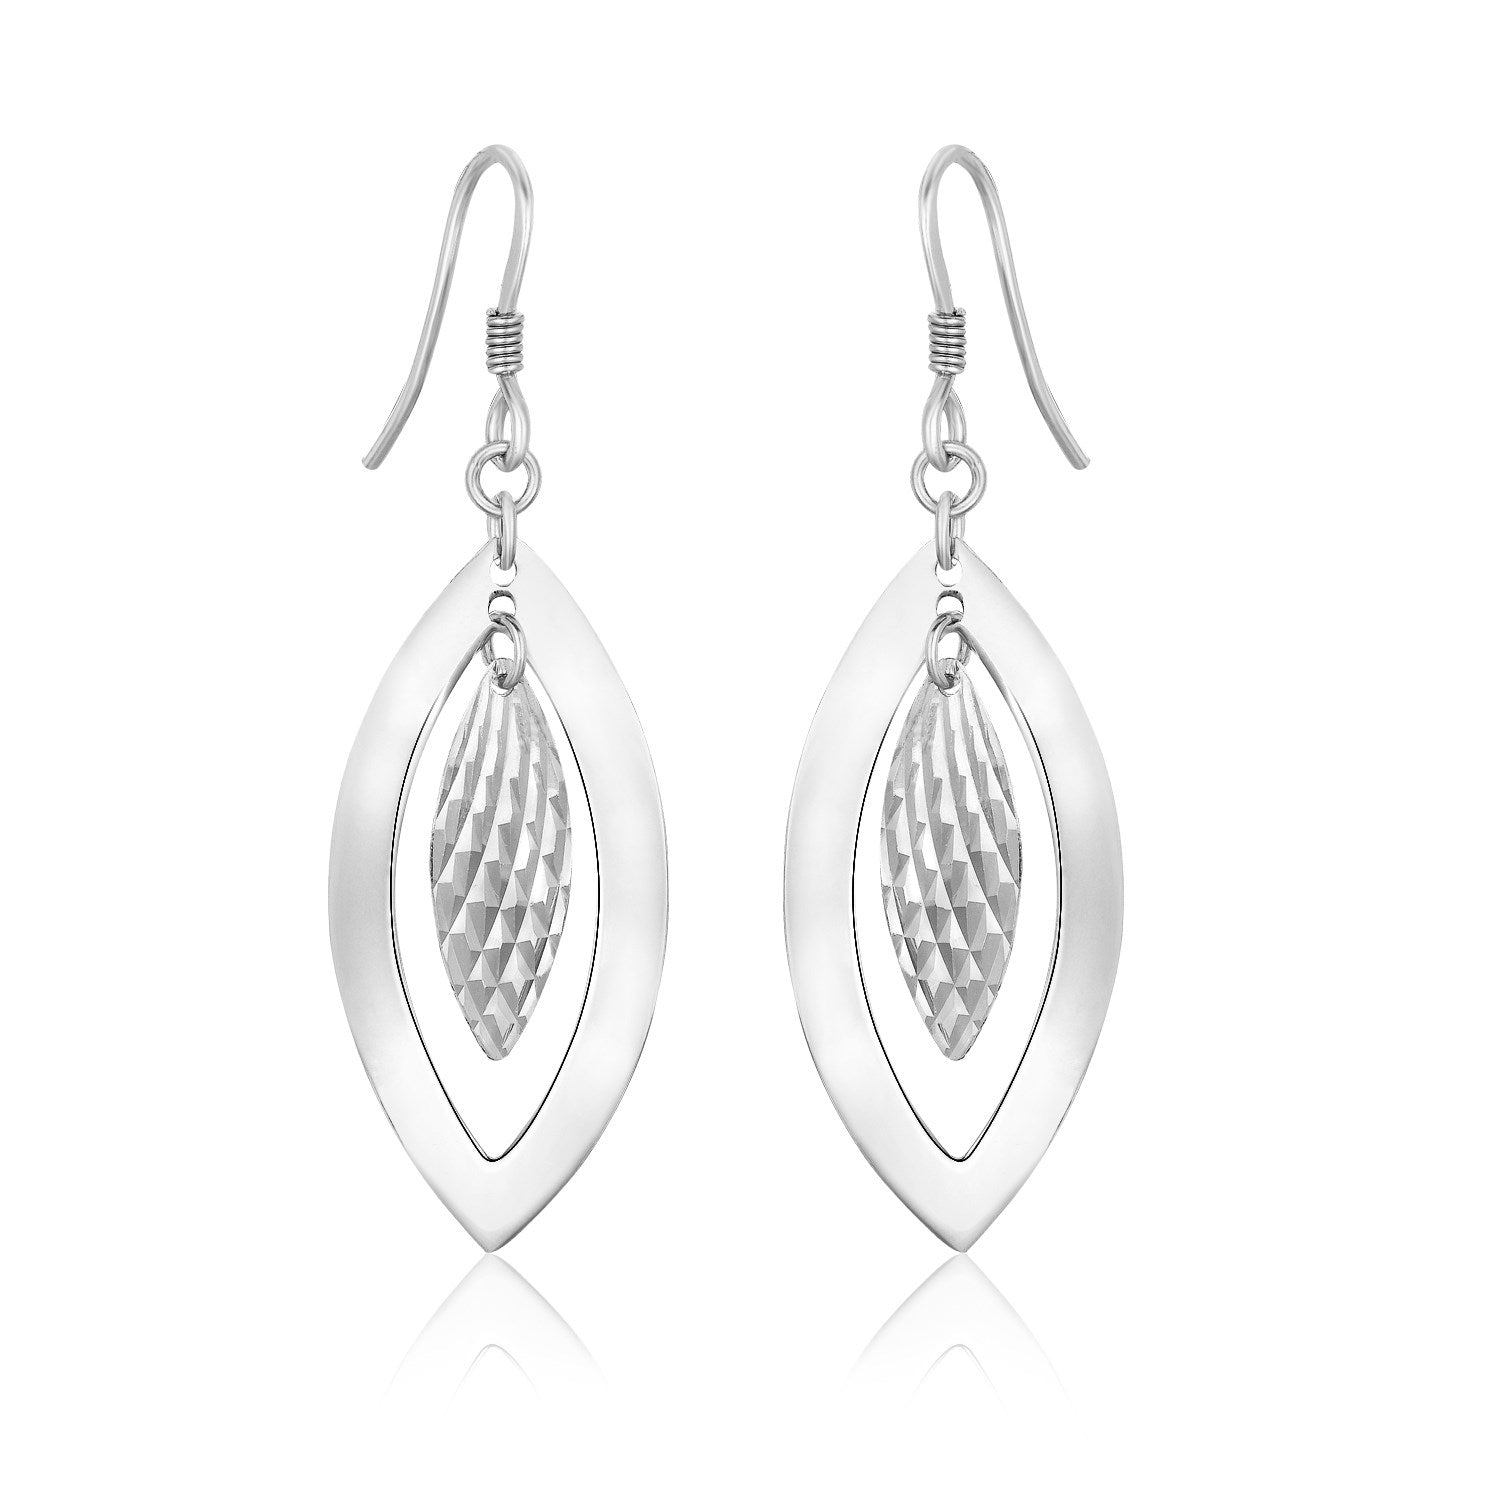 Sterling Silver Dangling Earrings with Dual Open and Textured Marquis Shapes